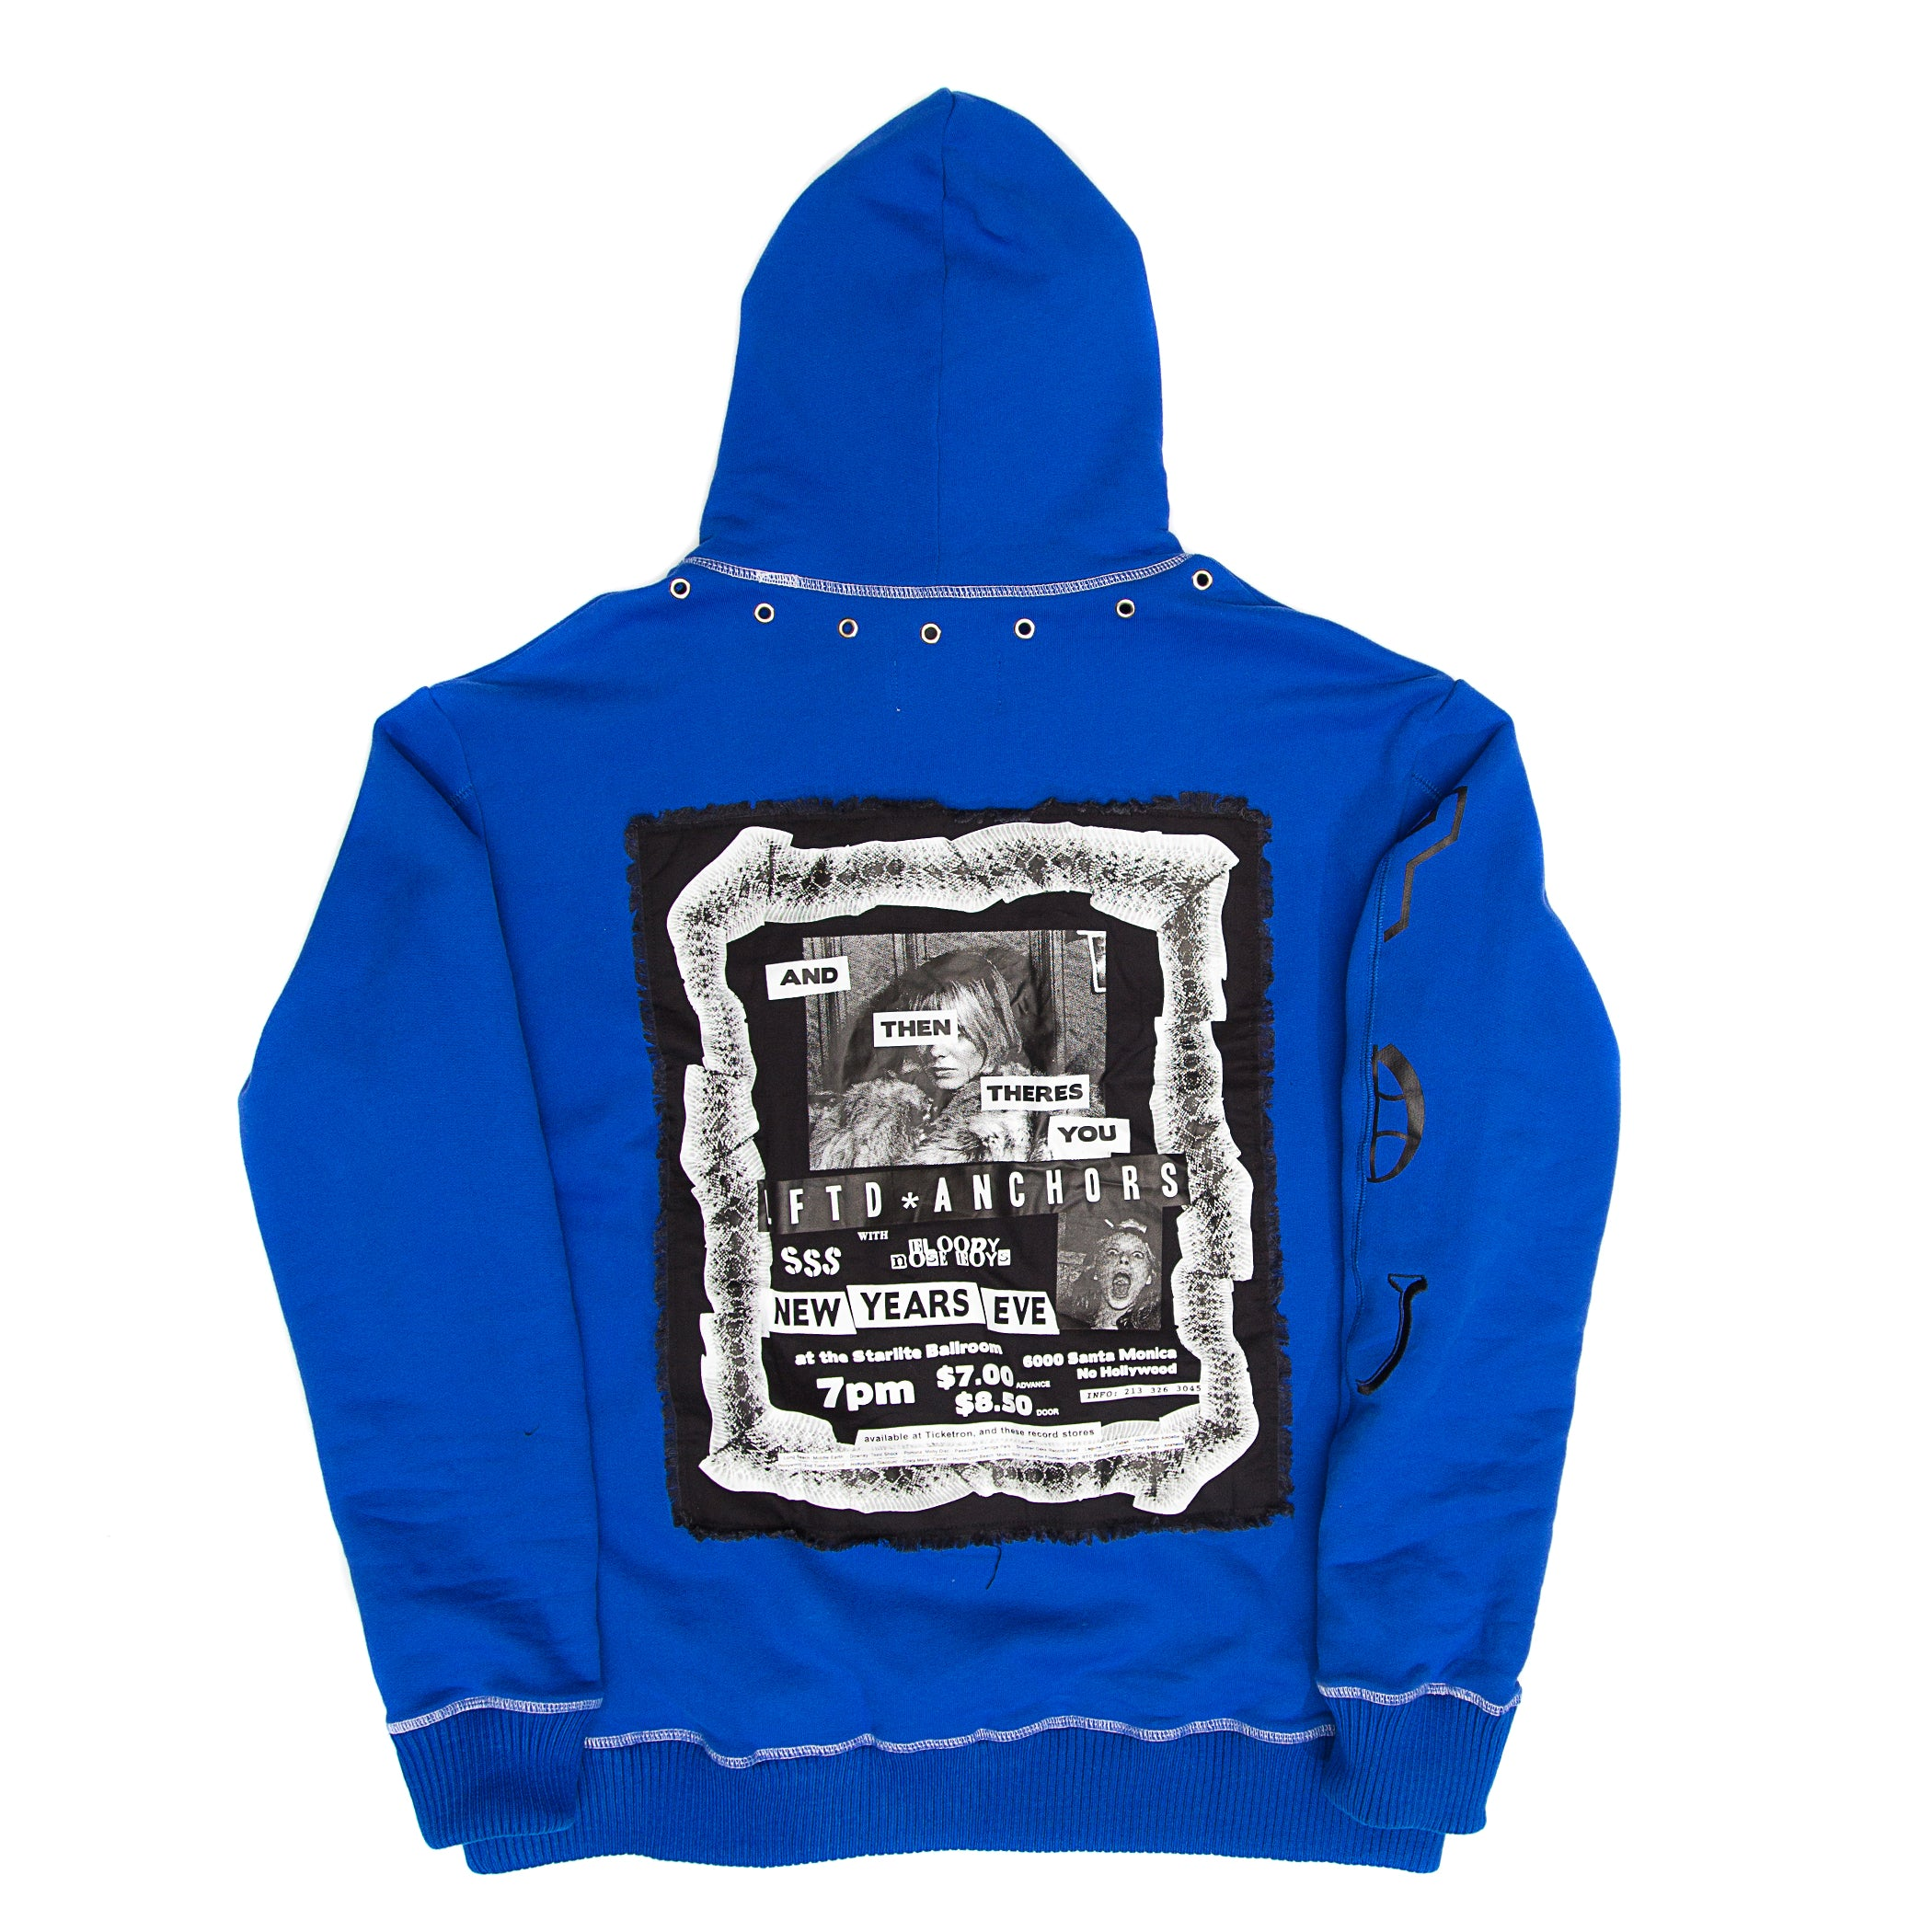 Lifted Anchors - Electra Hoodie